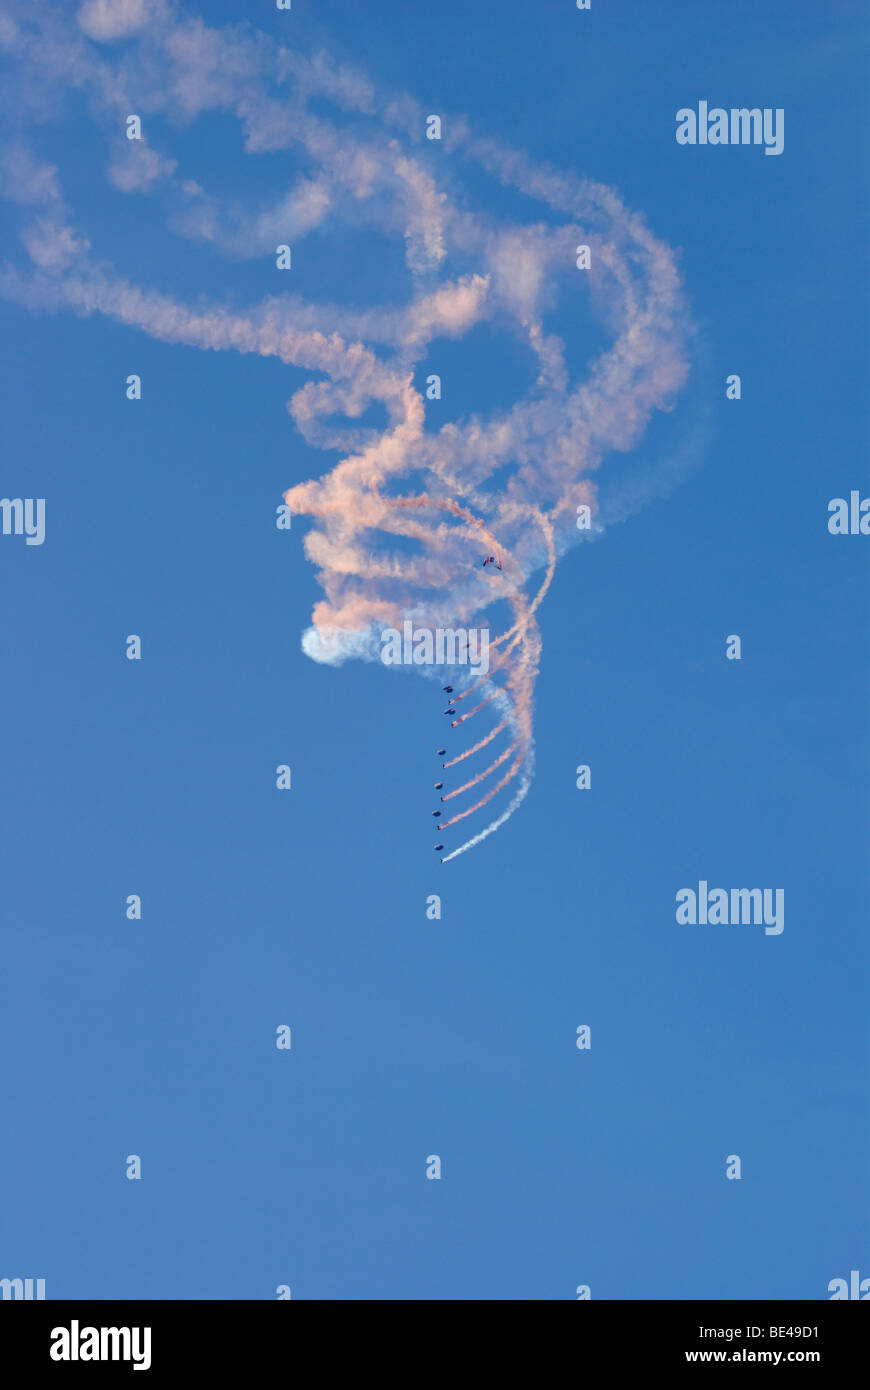 RAF Falcons display at Bournemouth Air Festival - Stock Image